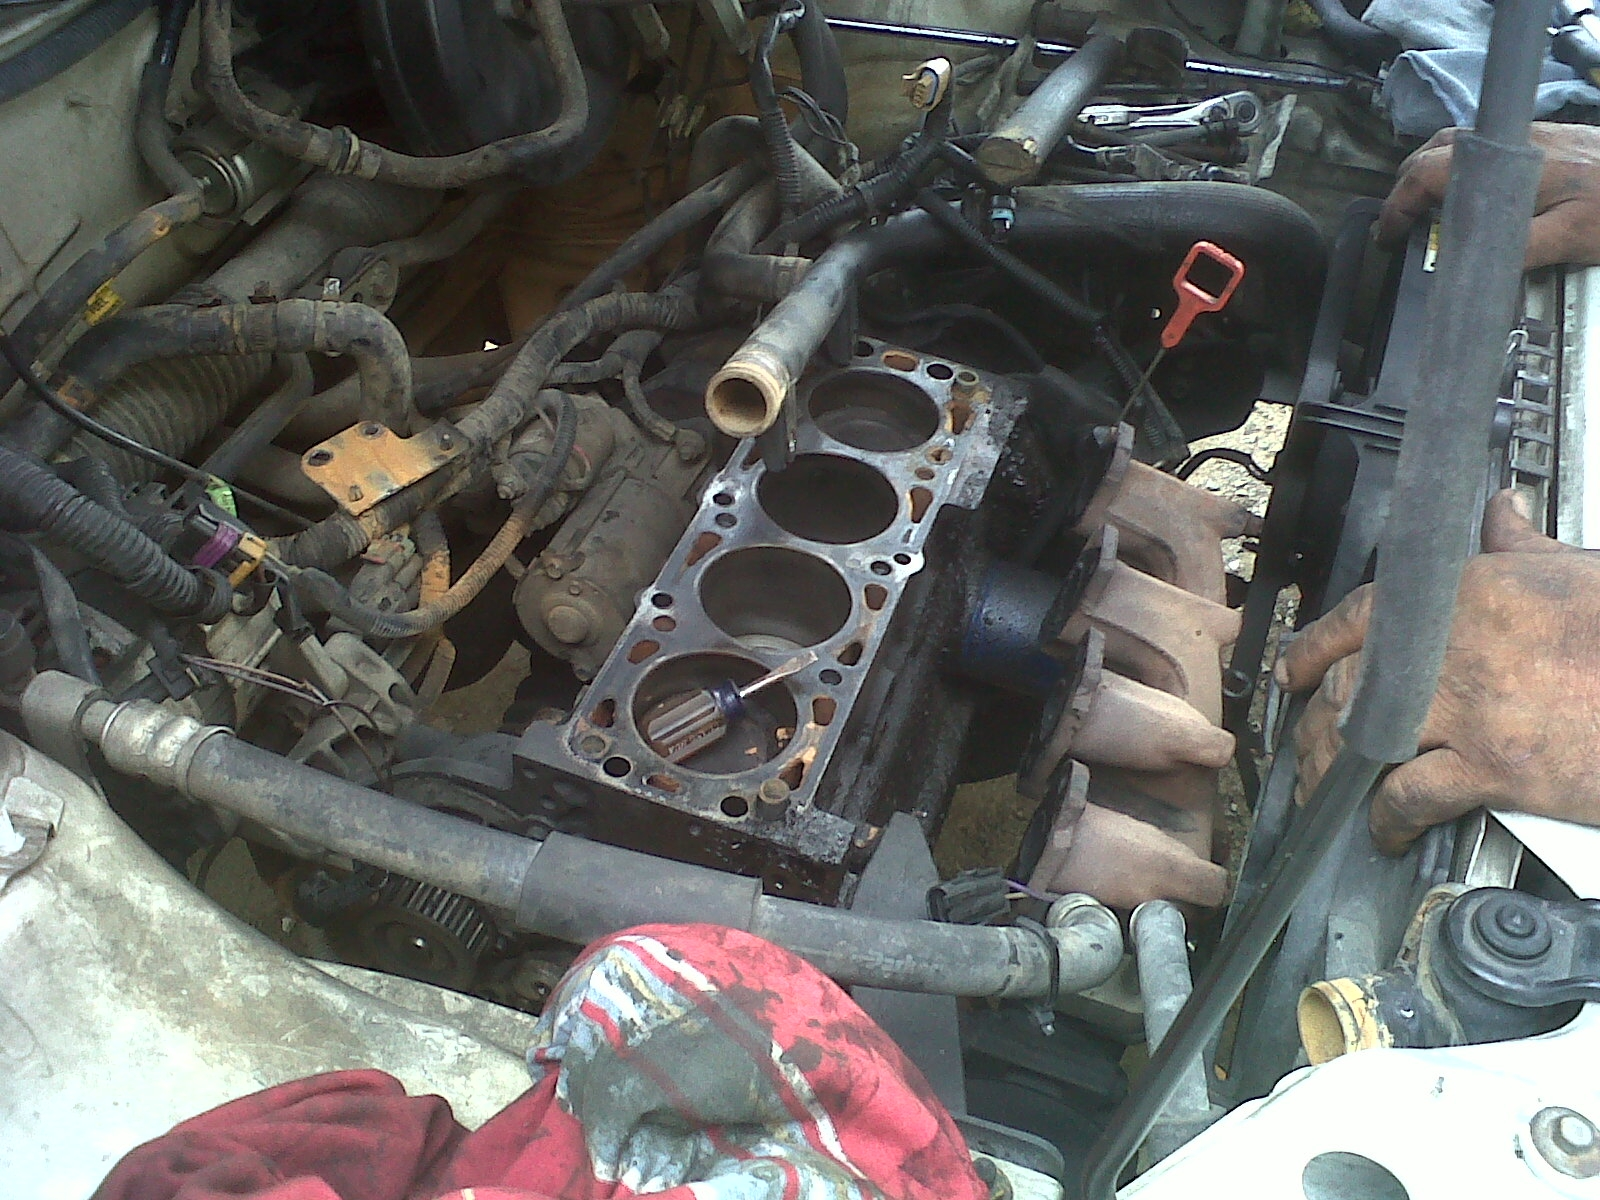 I had some minor problems with my engine... I accidently overheated the  engine